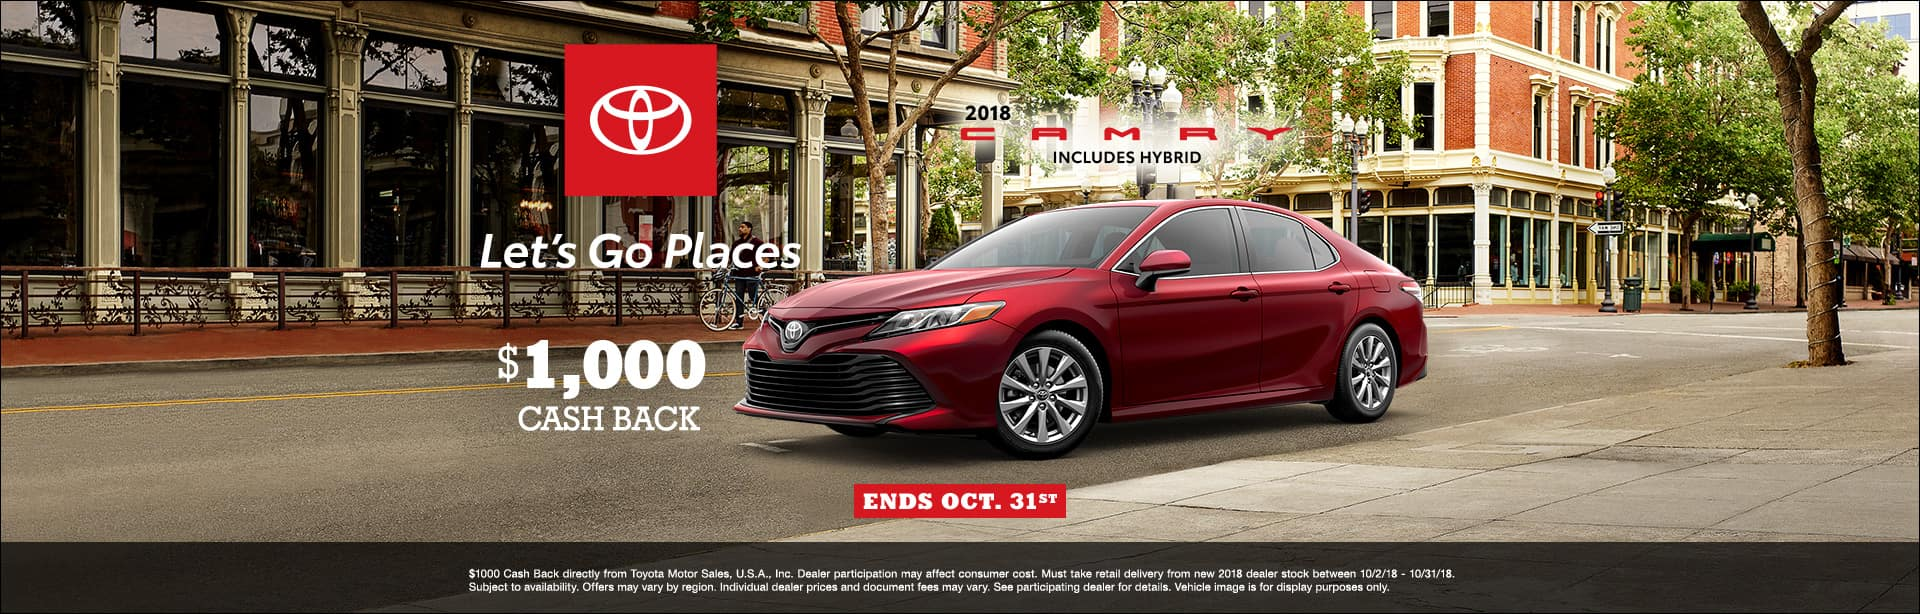 Toyota Camry Cash Back Offer Cain Toyota North Canton Ohio